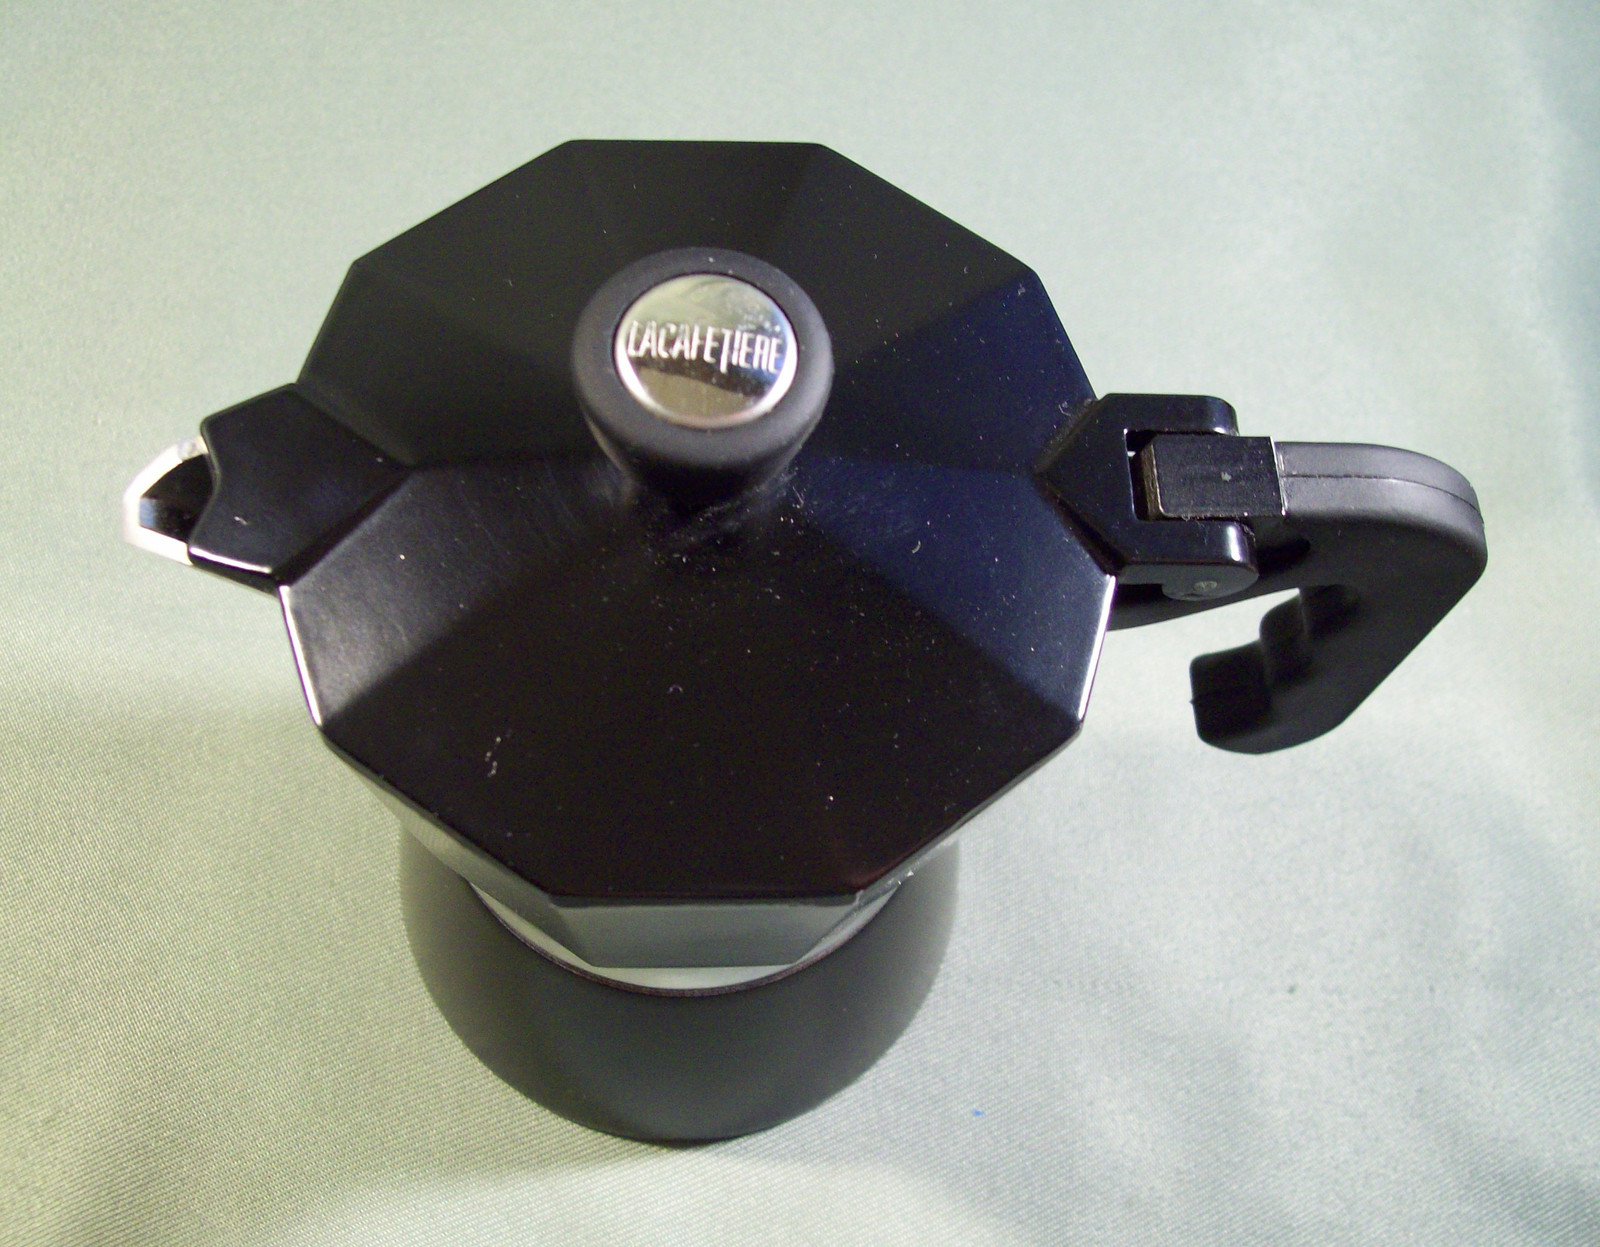 PRE-OWNED LA CAFETIERE BLACK STOVETOP ESPRESSO MAKER - SINGLE SERVING SIZE - Coffee Makers ...